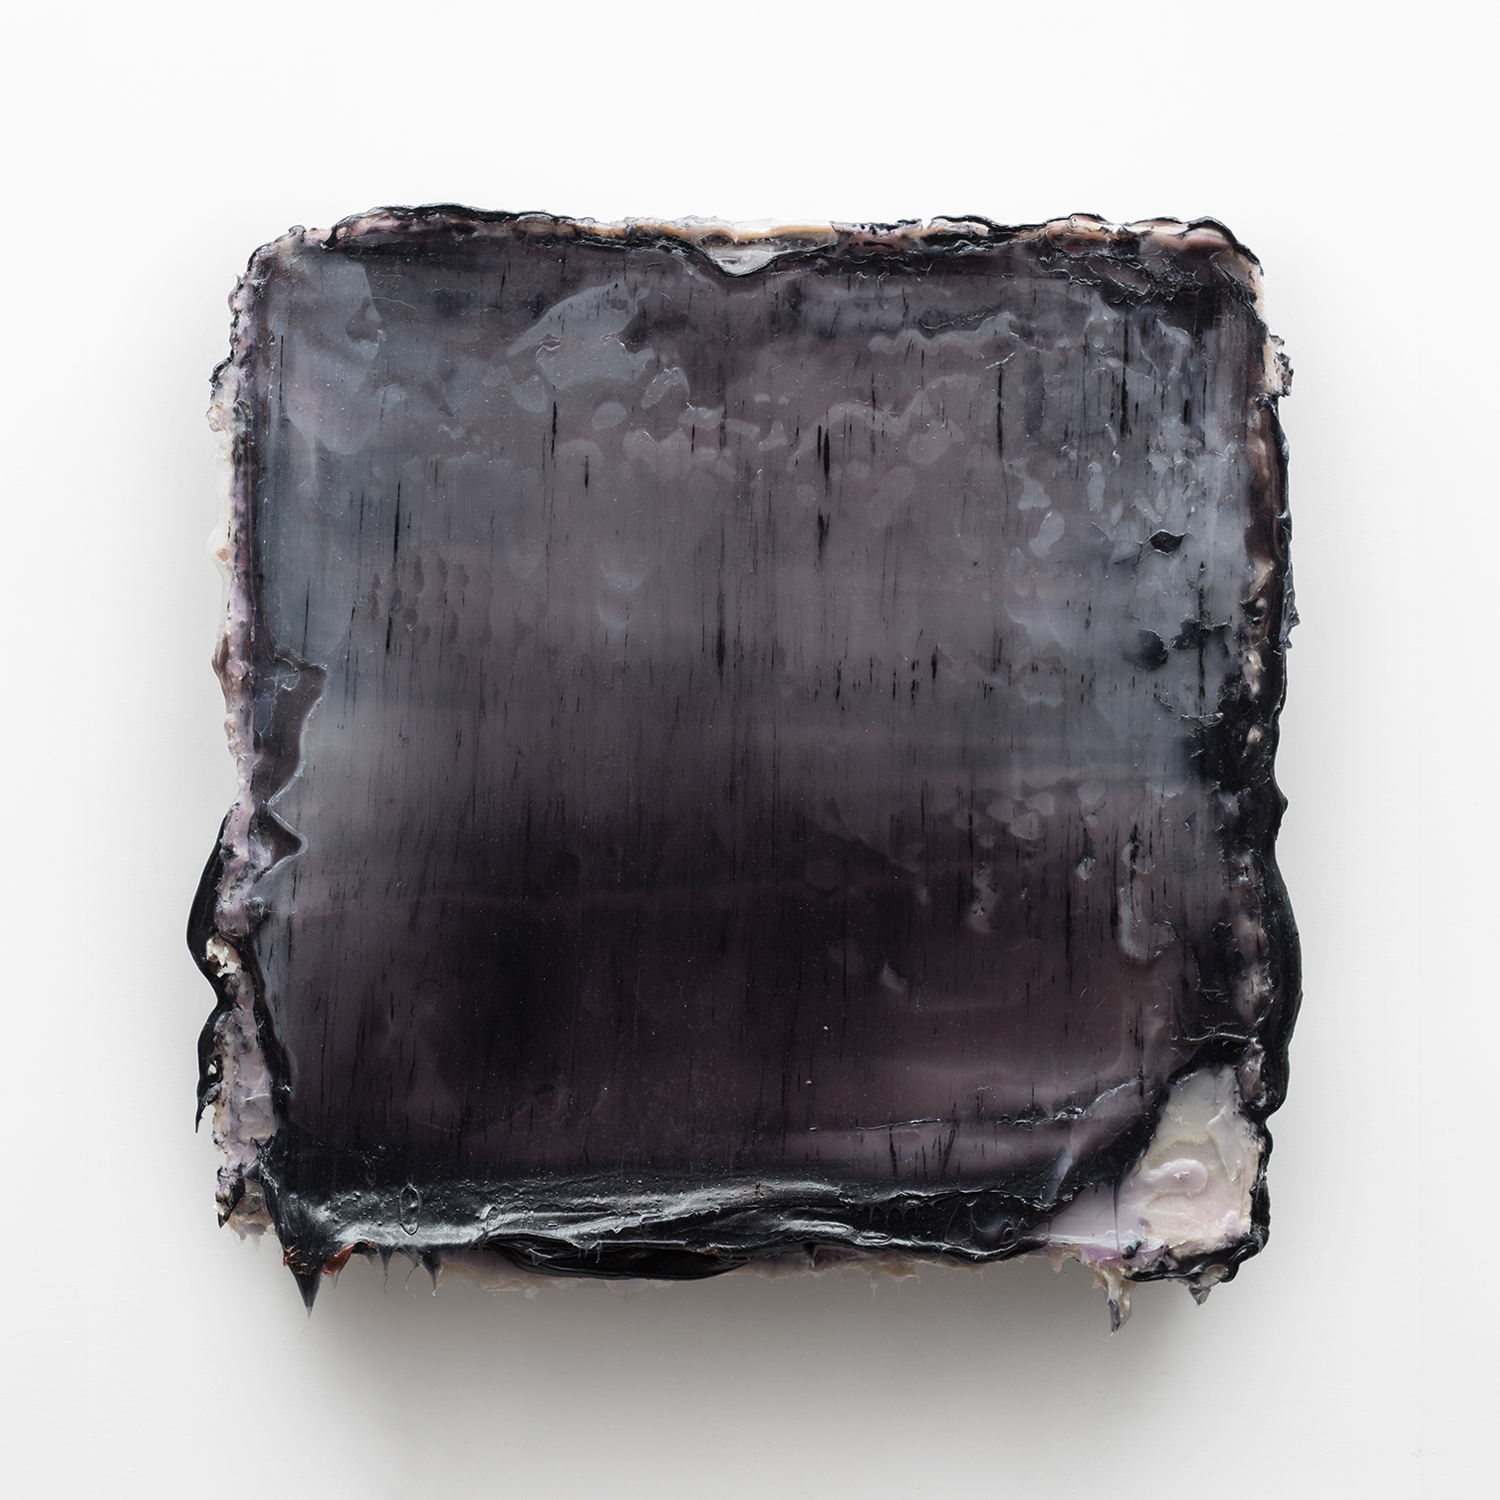 ESIR - Silicone & pigments on wood panel 28 x 27 x 2 inches70 x 69 x 5 cm 2014